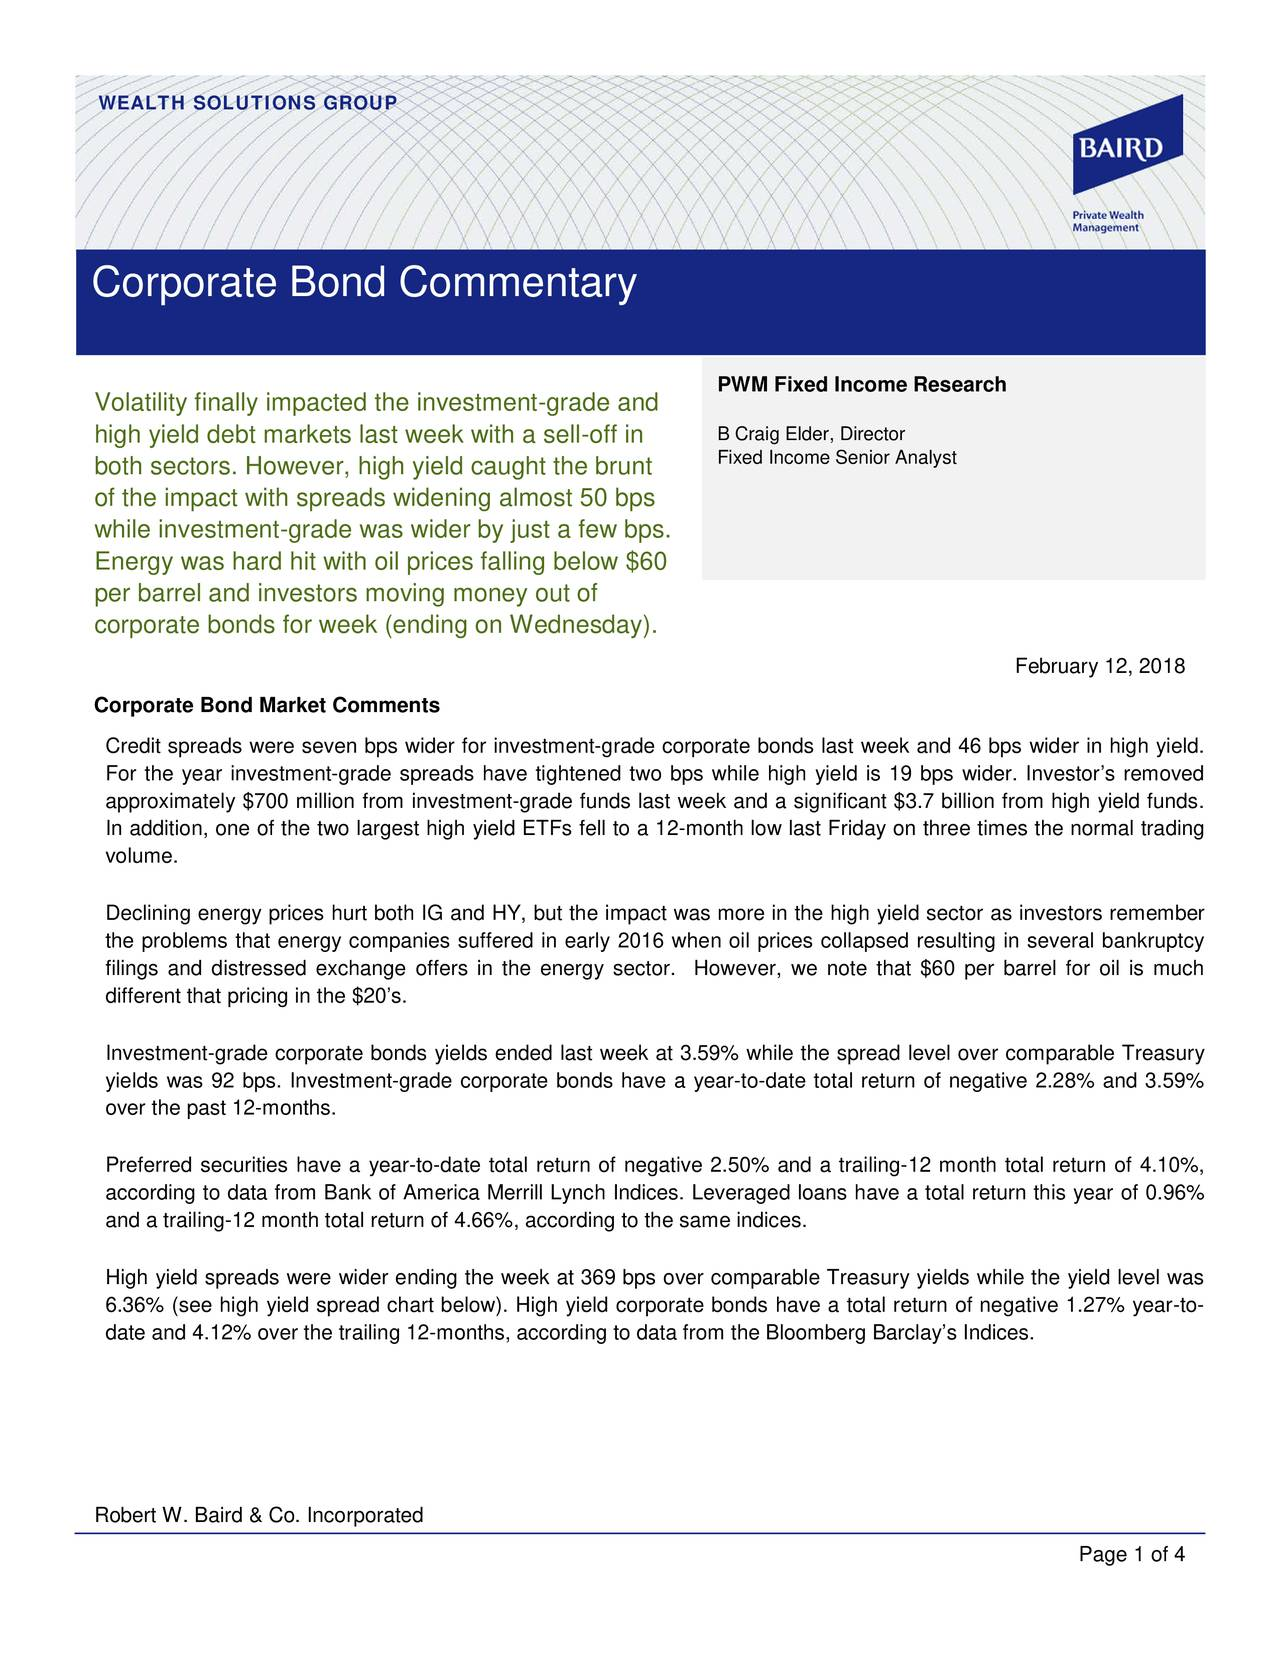 Corporate Bond Commentary PWM Fixed Income Research Volatility finally impacted the investment-grade and high yield debt markets last week with a sell-off in B Craig Elder, Director Fixed Income Senior Analyst both sectors. However, high yield caught the brunt of the impact with spreads widening almost 50 bps while investment-grade was wider by just a few bps. Energy was hard hit with oil prices falling below $60 per barrel and investors moving money out of corporate bonds for week (ending on Wednesday). February 12, 2018 Corporate Bond Market Comments Credit spreads were seven bps wider for investment -grade corporate bonds last week and 46 bps wider in high yield. For the year investment -grade spreads have tightened two bps while high yield is 19 bps wider. Investor's removed approximately $700 million from investment-grade funds last week and a significant $3.7 billion from high yield funds. In addition, one of the two largest high yield ETFs fell to a 12- month low last Friday on three times the normal trading volume. Declining energy prices hurt both IG and HY, but the impact was more in the high yield secas investors remember the problems that energy companies suffered in early 2016 when oil prices collapsed resulting in several bankruptcy filings and distressed exchange offers in the energy sector. However, we note that $60 per barrel for oil is much different that pricing in the $20's. Investment-grade corporate bonds yields ended last week at 3.59% while the spread level over comparable Treasury yields was 92 bps. Investment -grade corporate bonds have a year -to-date total return of negative 2.28% and 3.59% over the past 12-months. Preferred securities have a year -to-date total return of negative 2.50% and a trailing- 12 month total return of 4.10%, according to data from Bank of America Merrill Lynch Indices. Leveraged loans have a total return this of 0.96% and a trailing-12 month total return of 4.66%, according to the same indices. High yield spreads